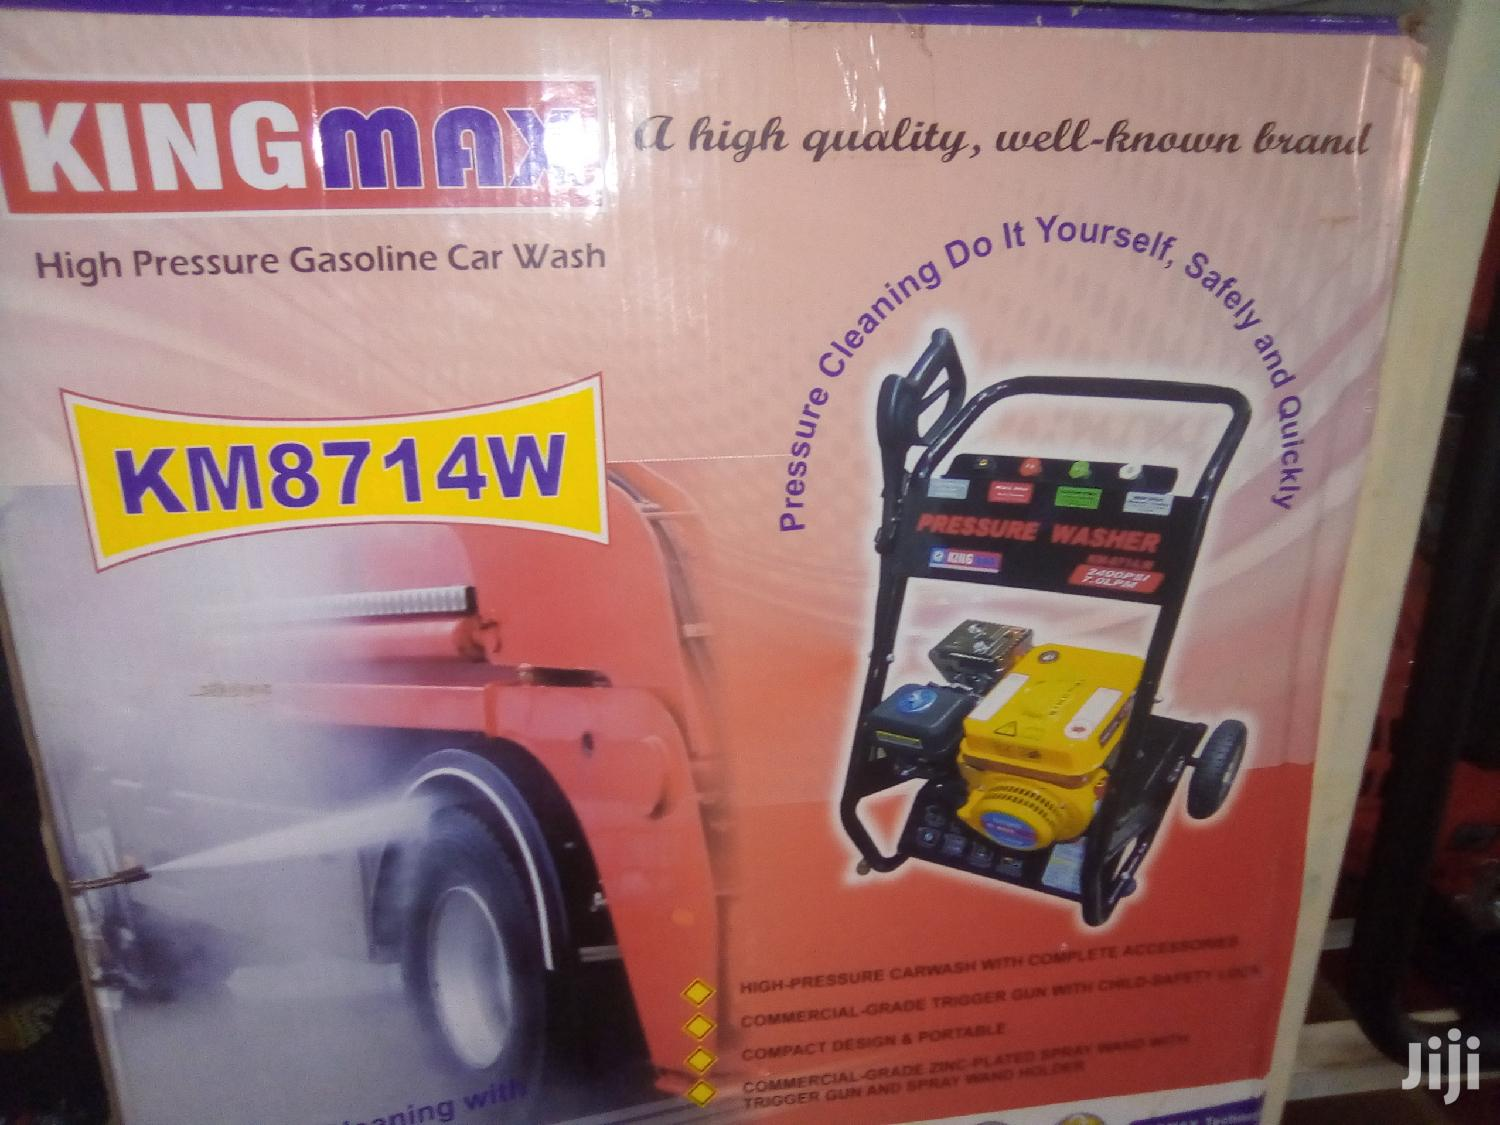 Car Pressure Washer | Vehicle Parts & Accessories for sale in Kampala, Uganda